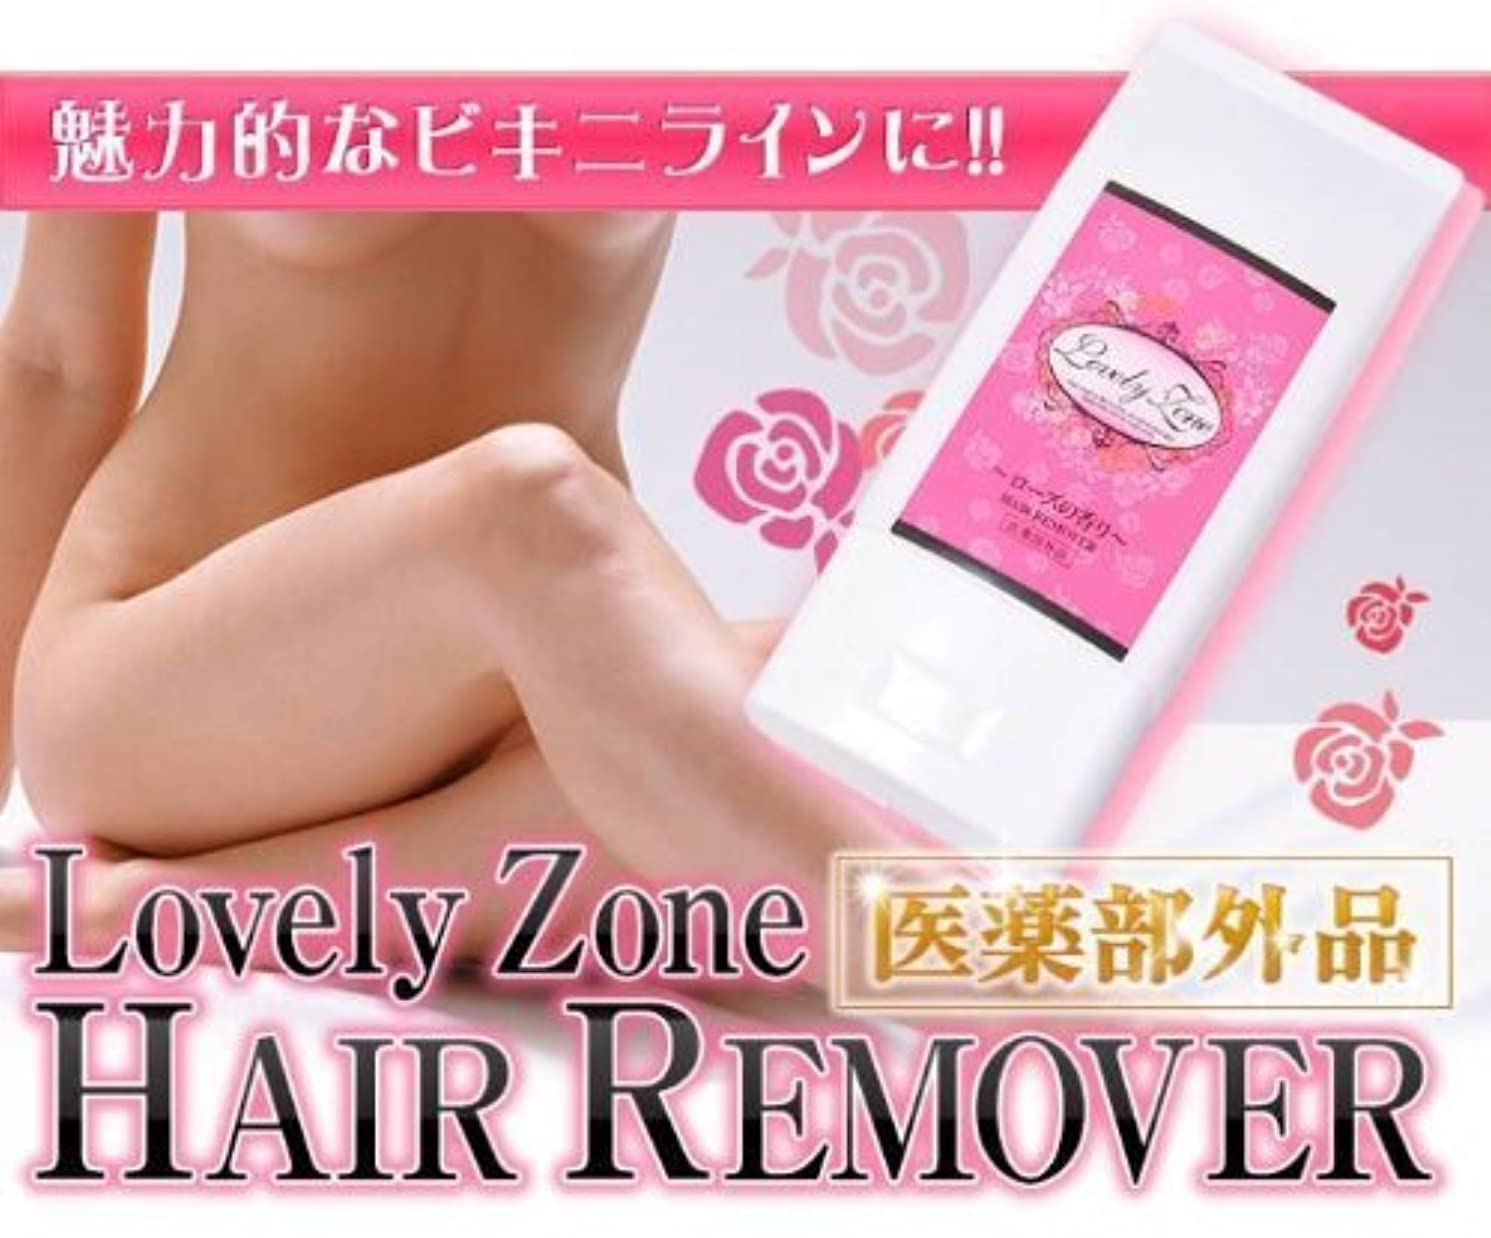 Lovely Zone HAIR REMOVER ラブリーゾーン ヘアリムーバー 【 大人のセクシー系 除毛クリーム 】 悩める女性のための 除毛????